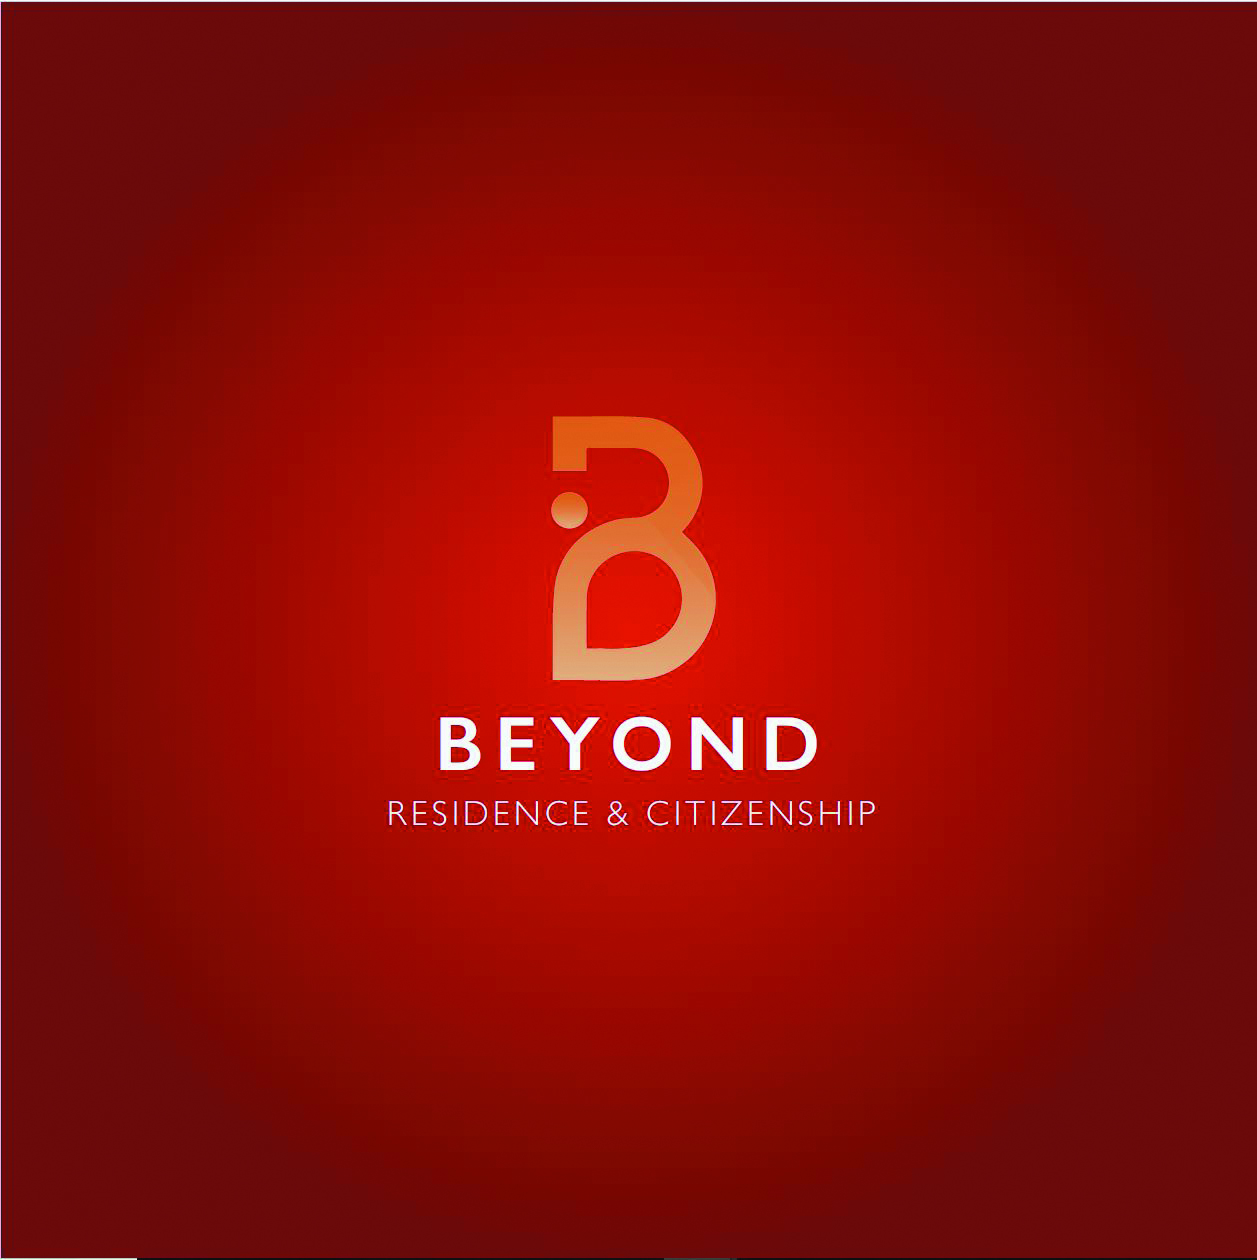 Beyond Residence & citizenship logo